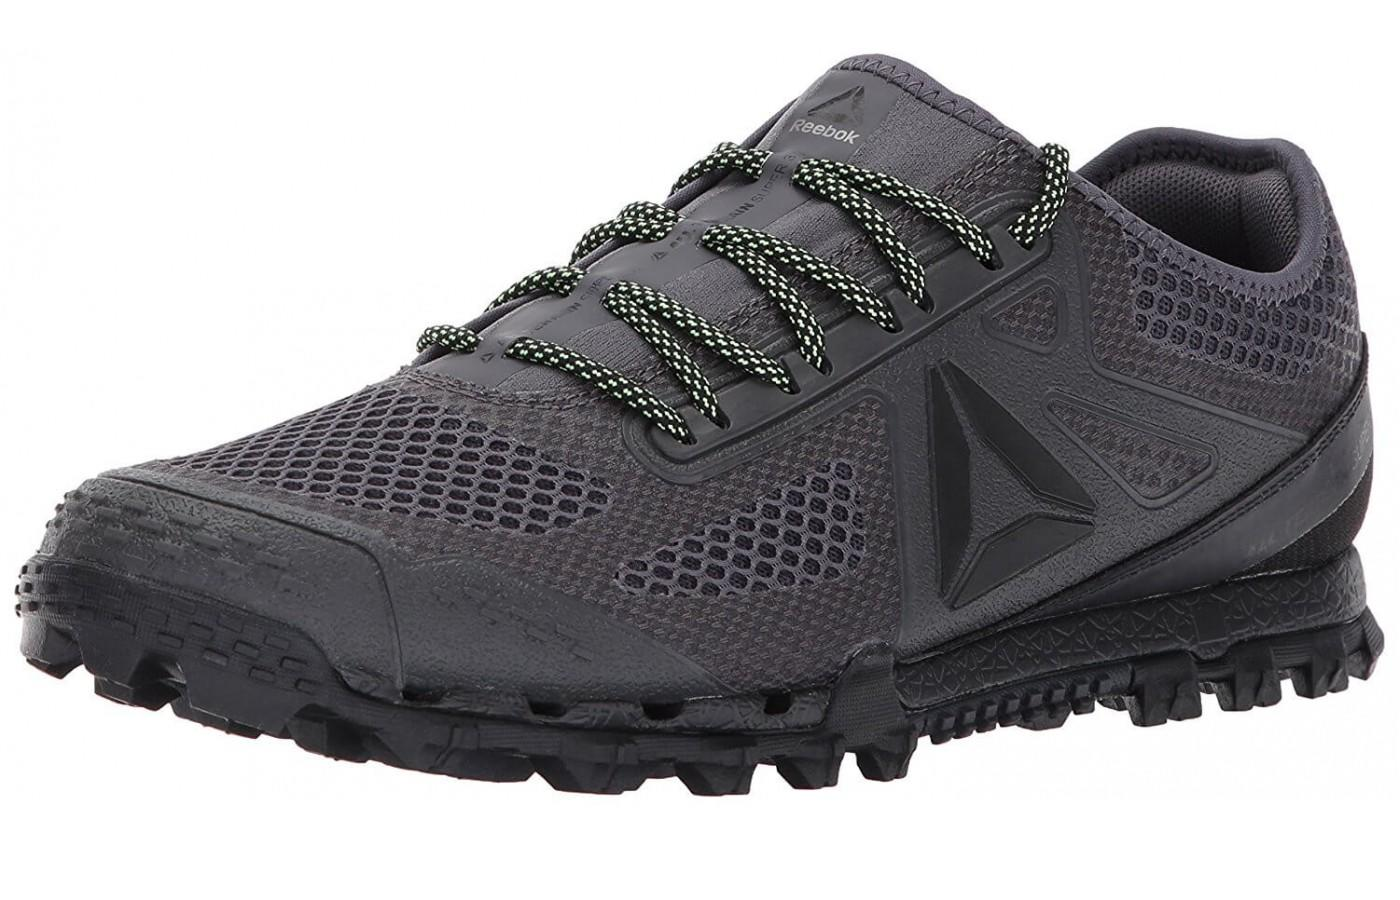 The Reebok All Terrain Super 3.0 is designed for obstacle race running.